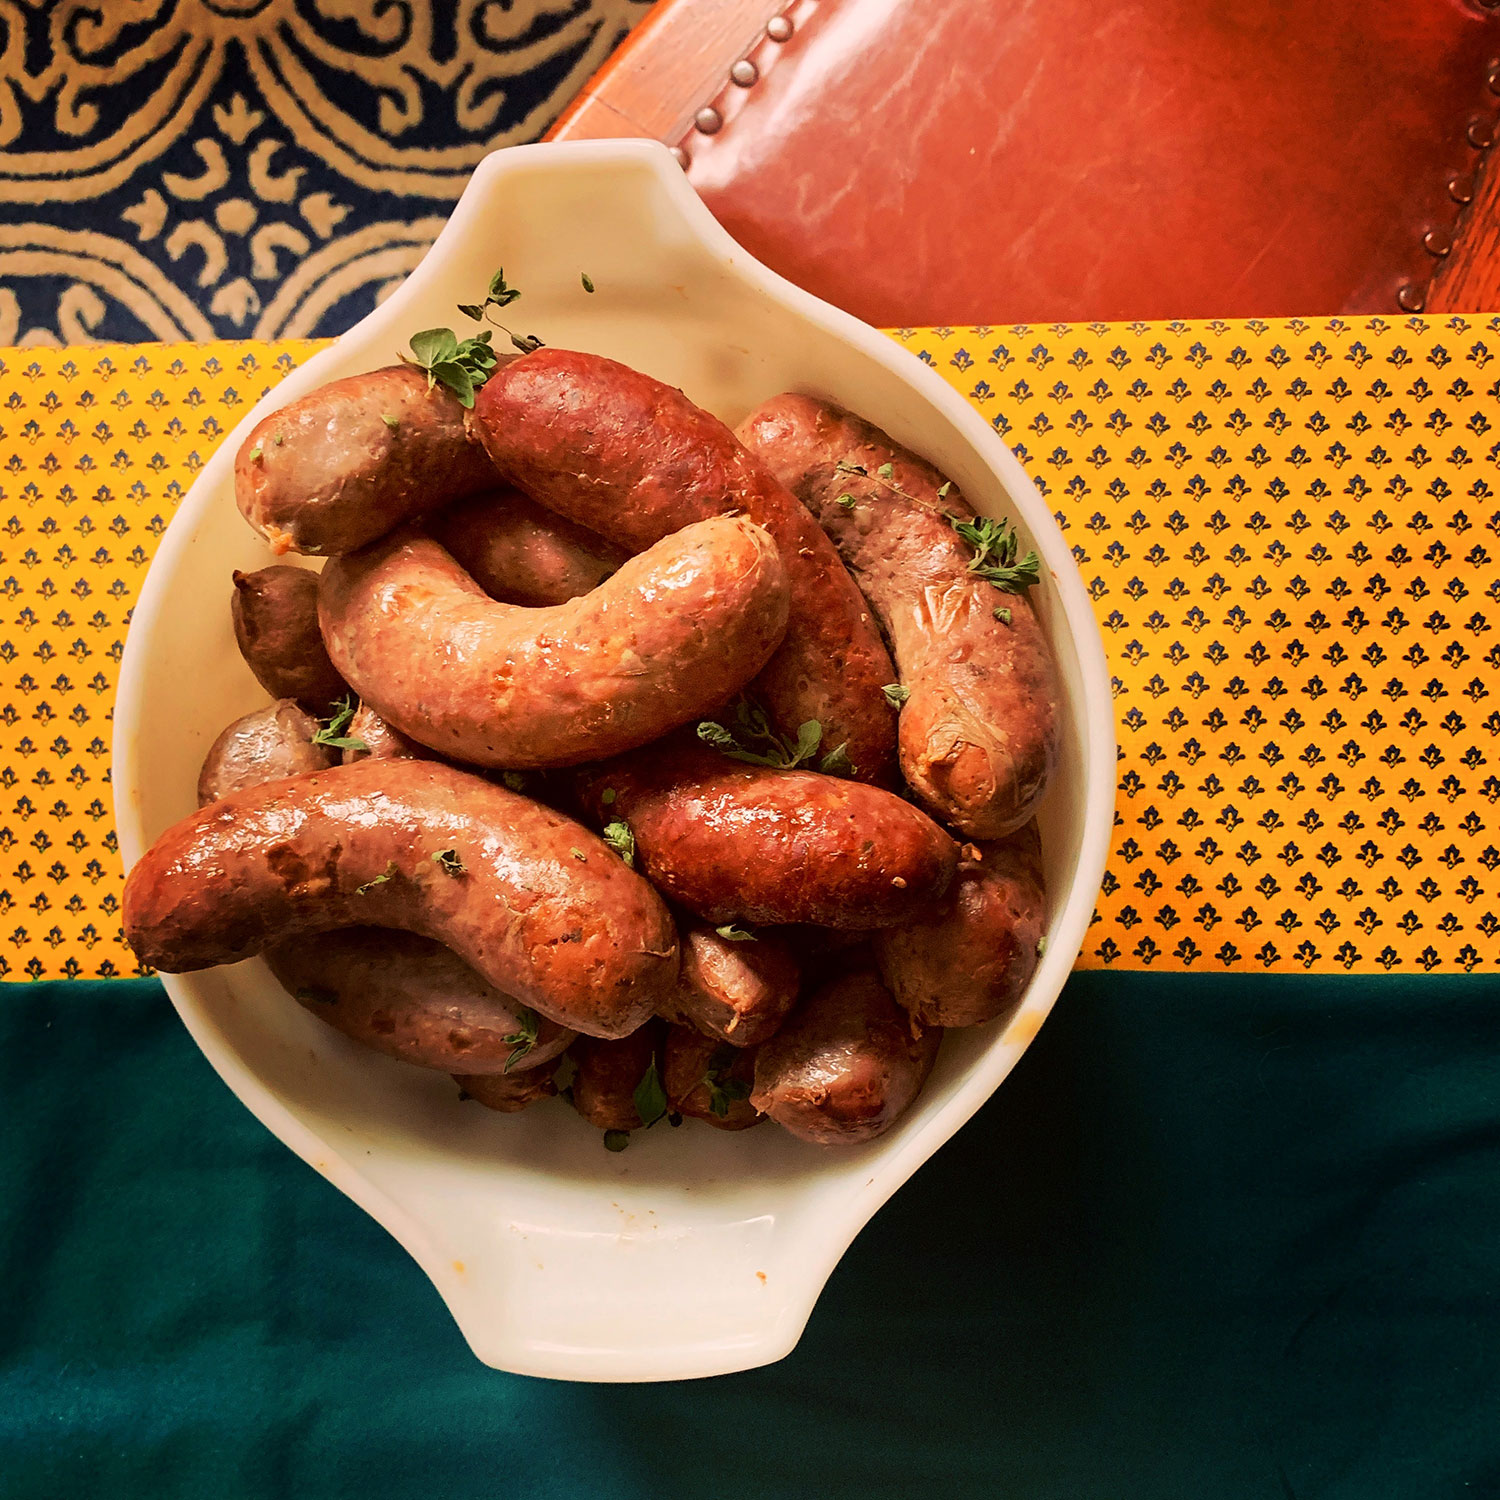 sausage family - private chef services olive NY